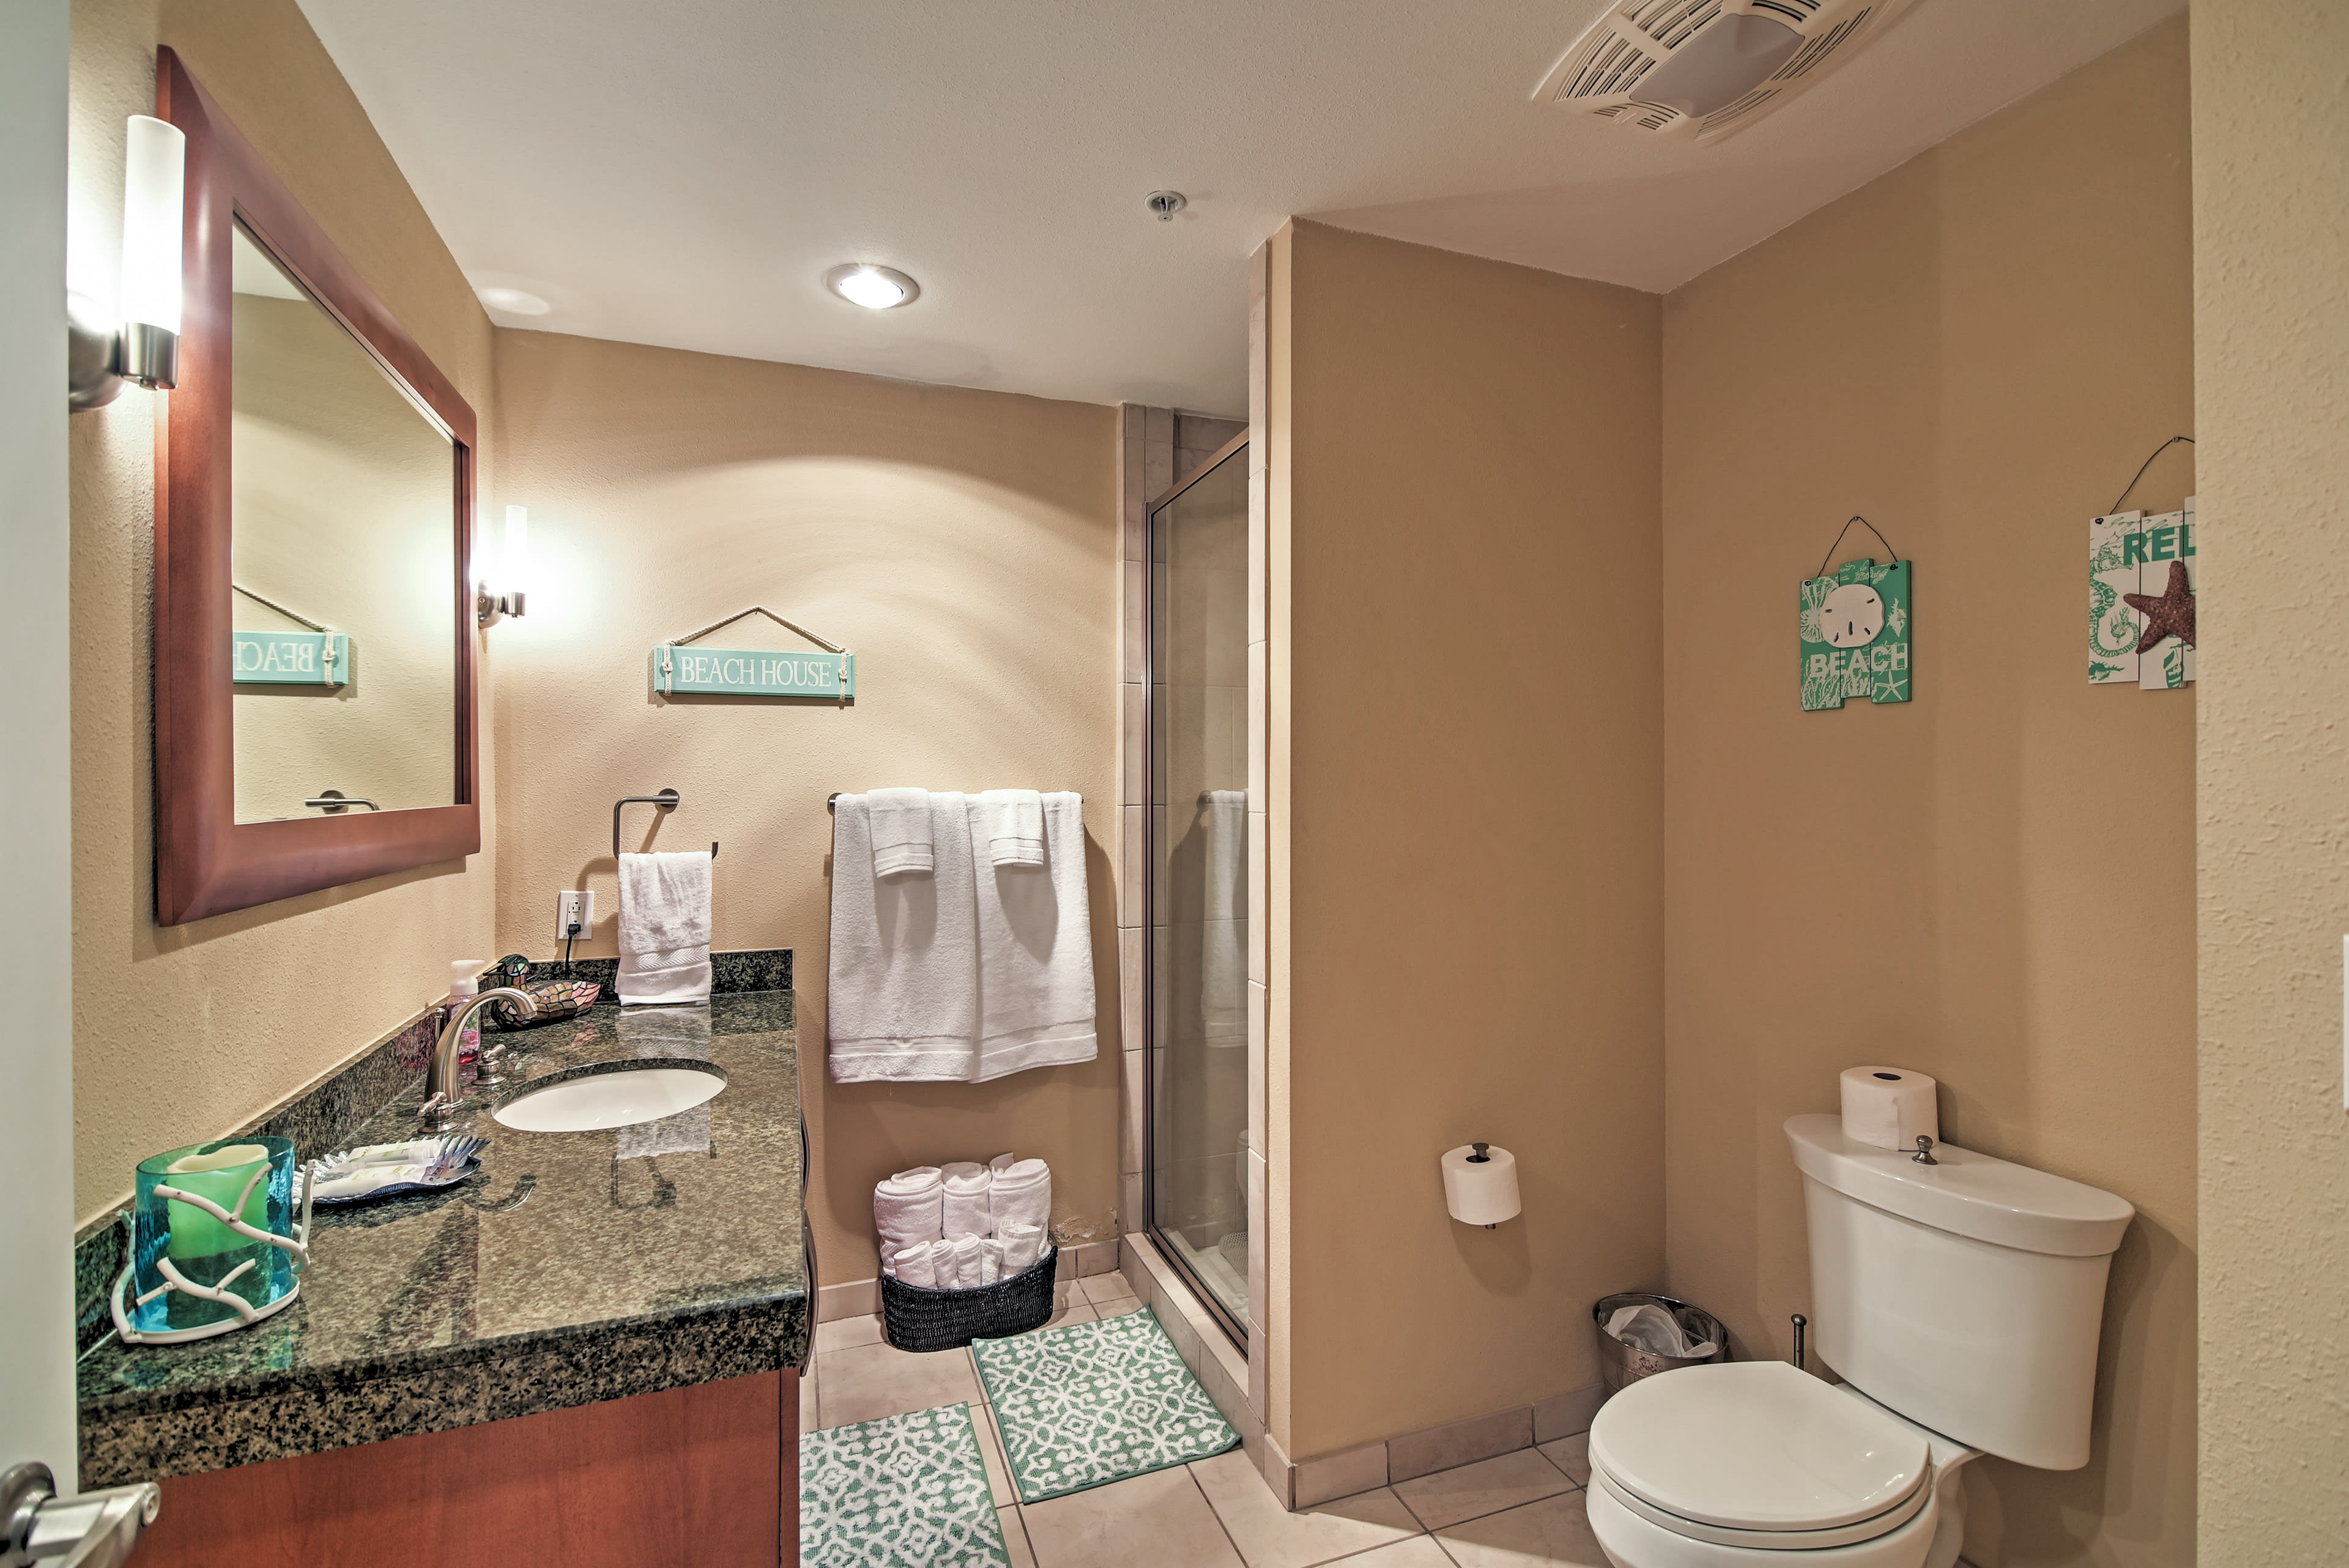 Enjoy a cleansing shower in this full bathroom after a day on the beach.